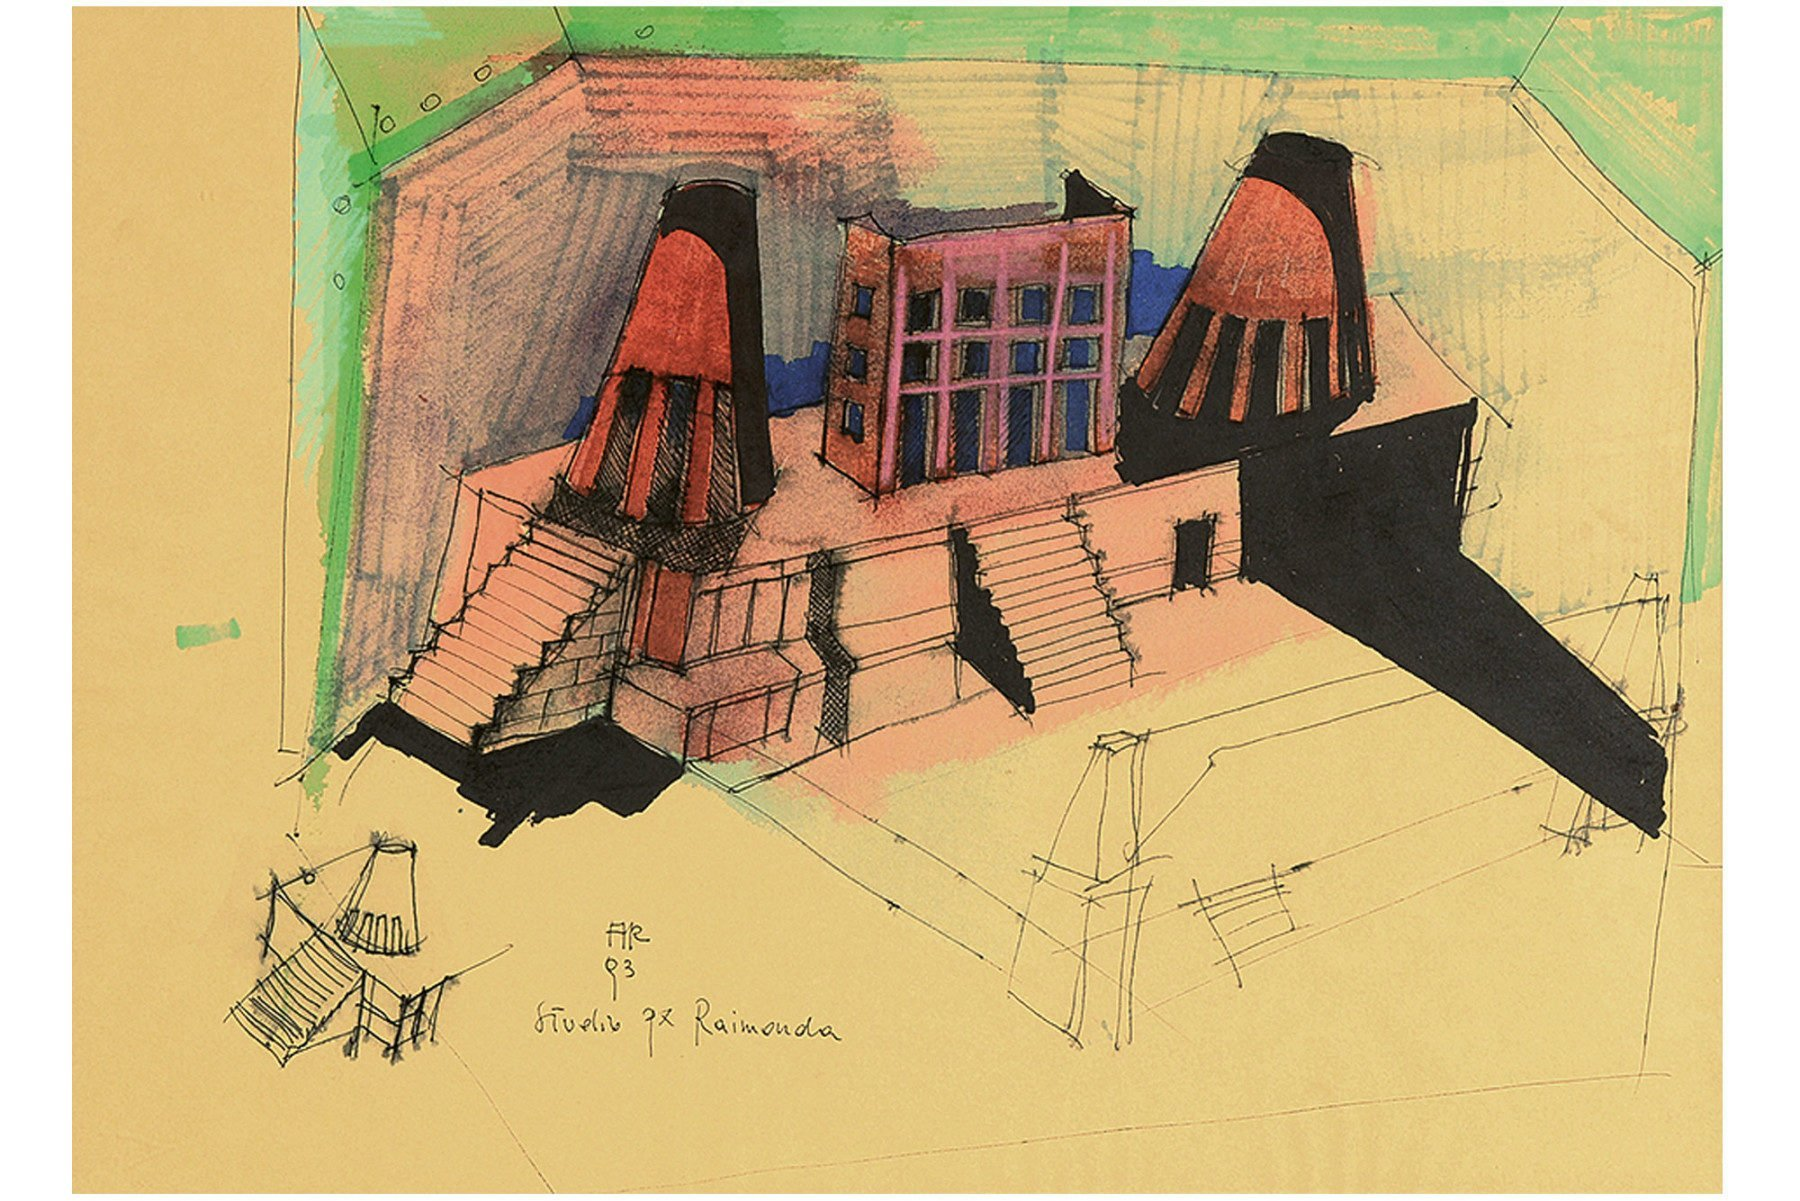 Italian architect Aldo Rossi - Studio px Raimonda - architectural drawing - Landscape